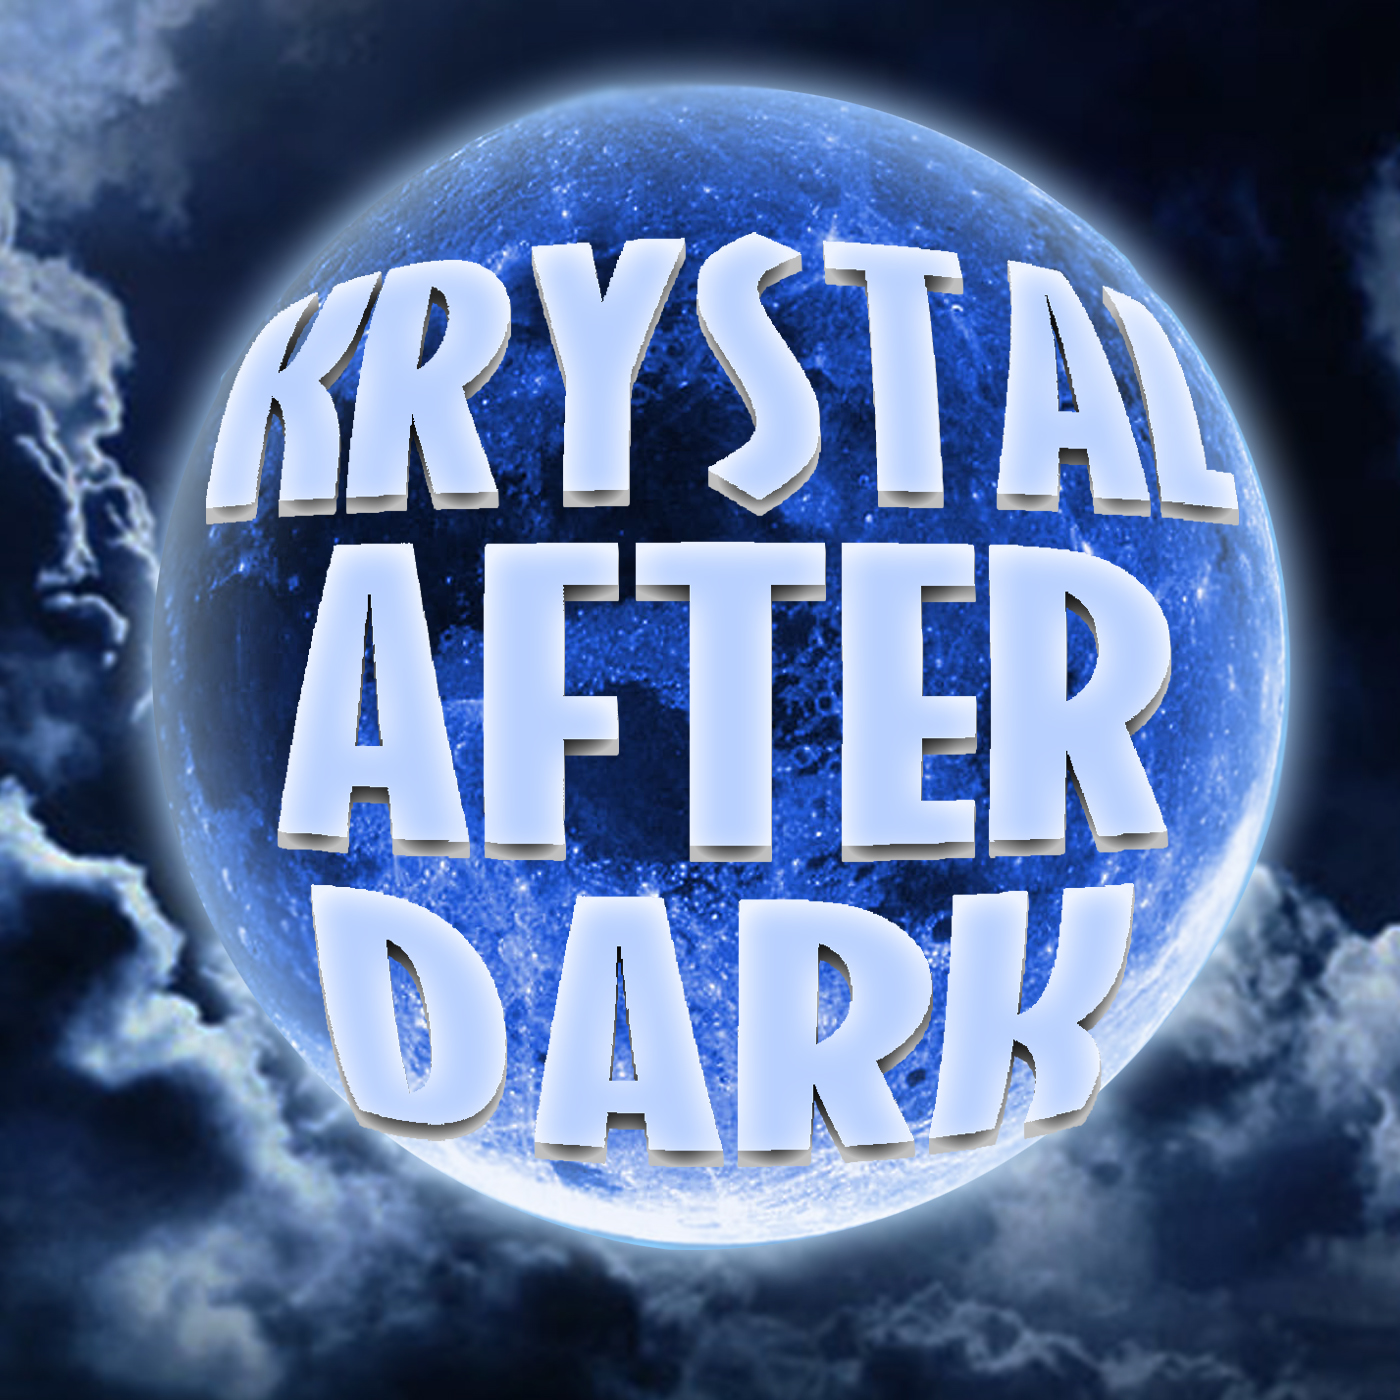 Krystal After Dark